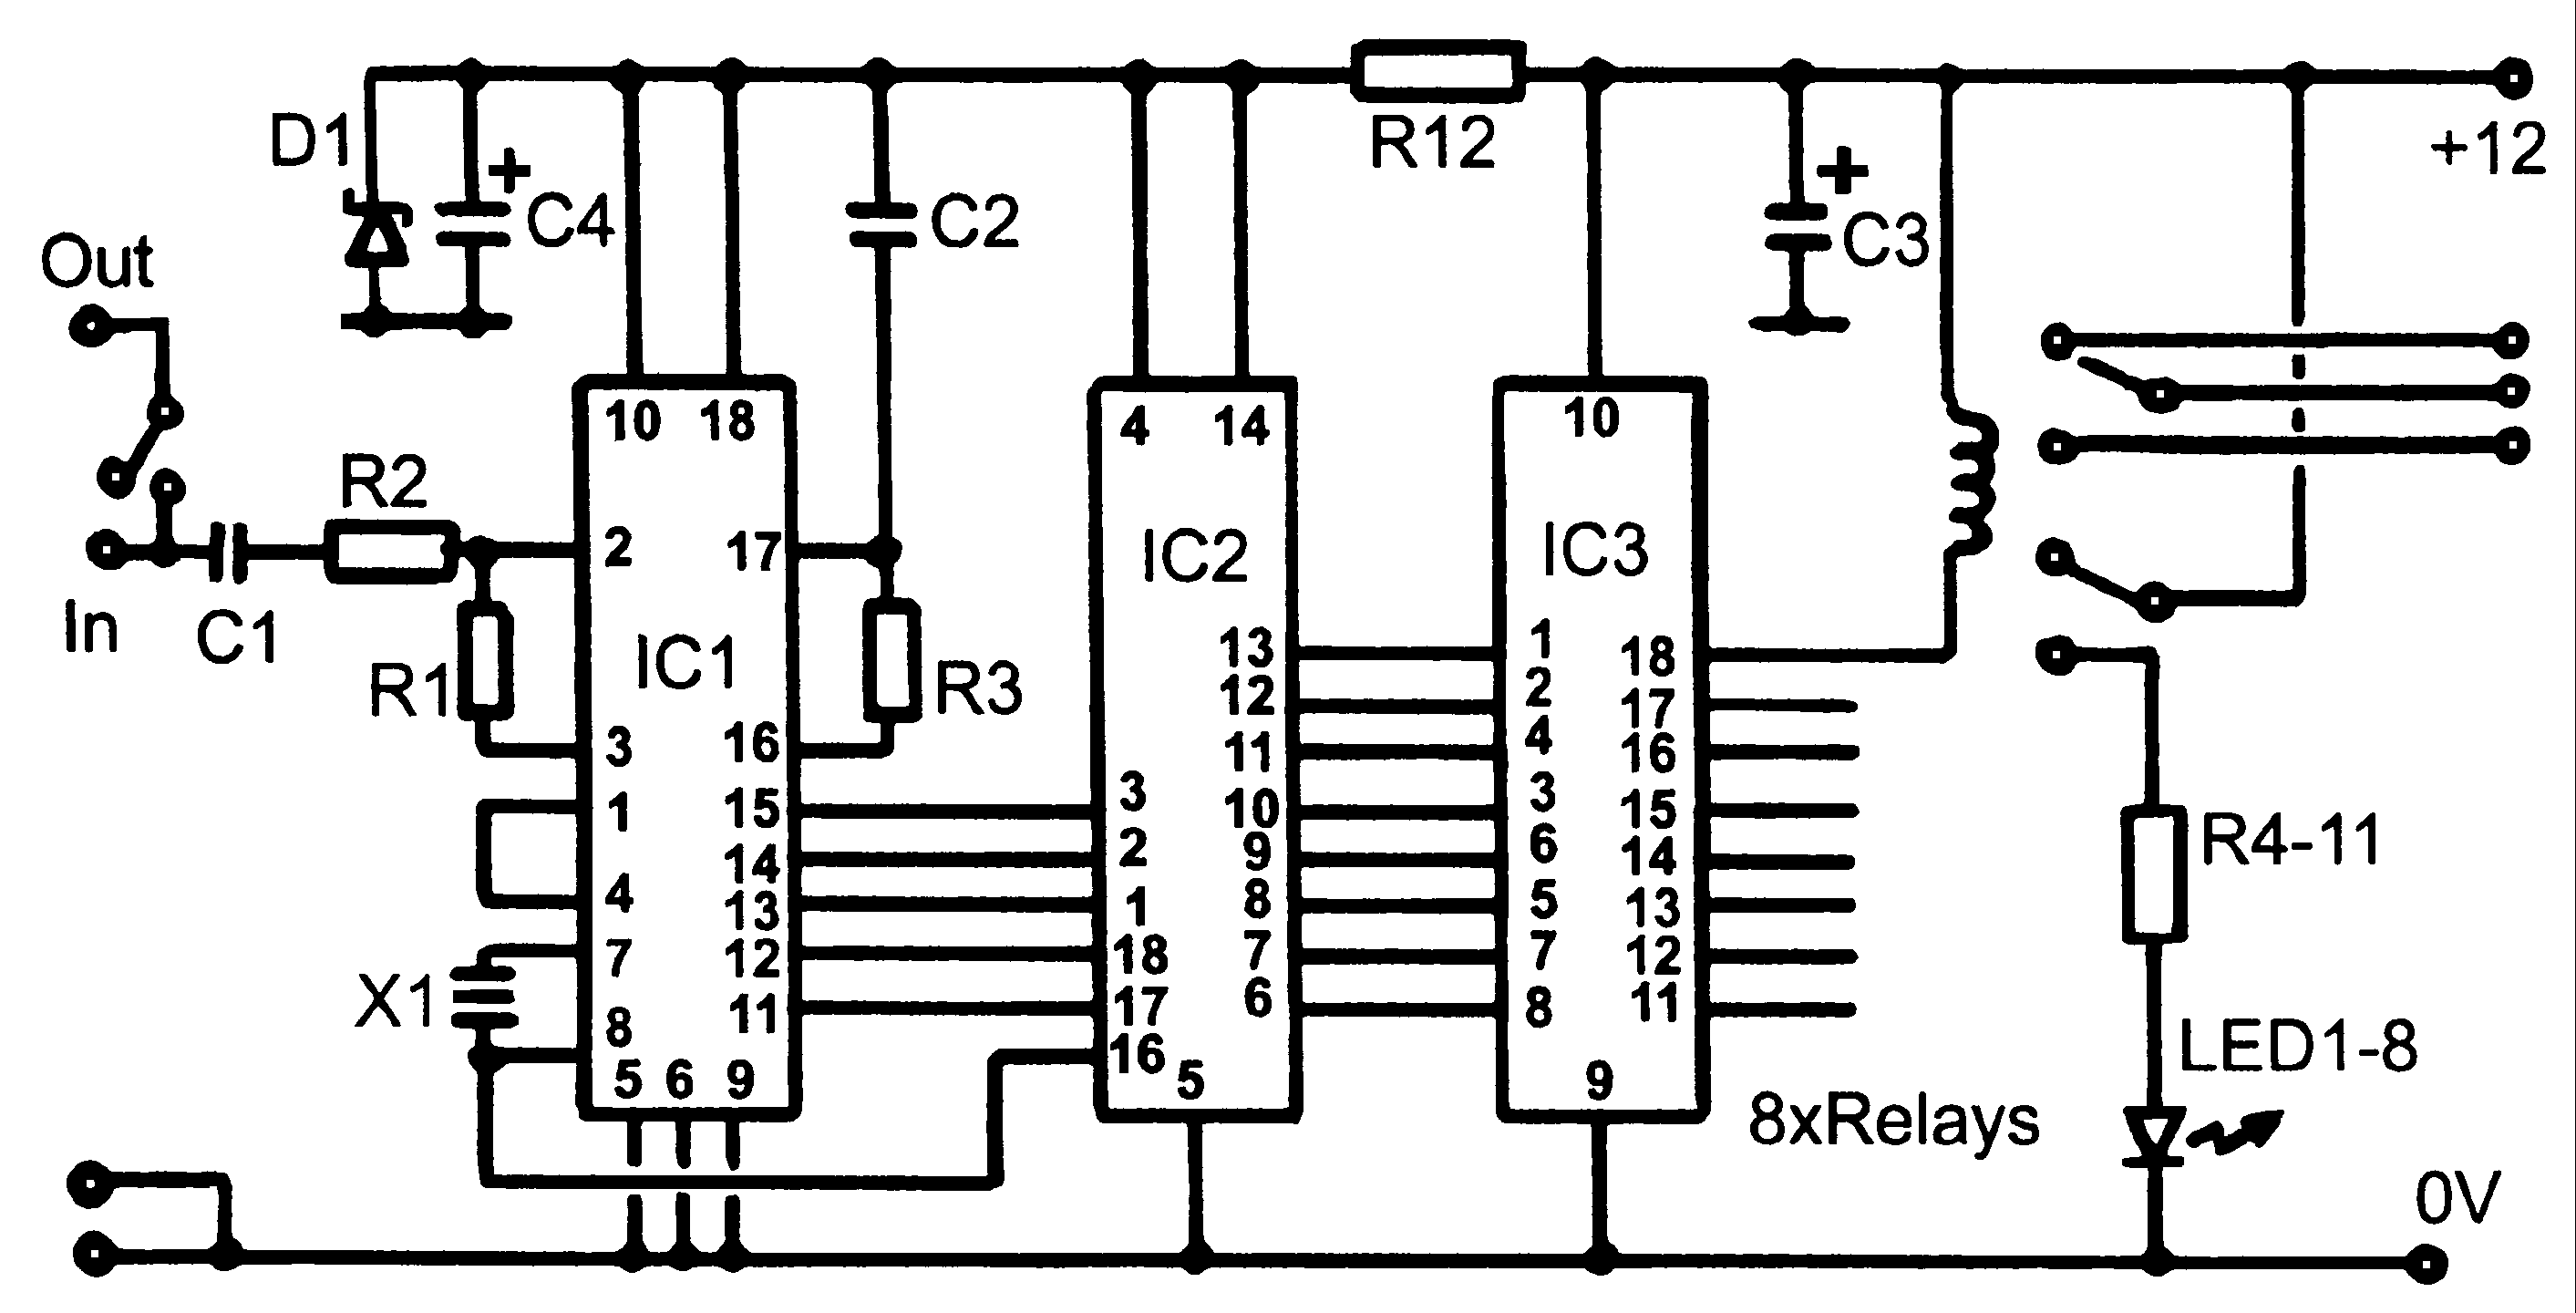 11 pin latching relay wiring diagram 11 pin relay base